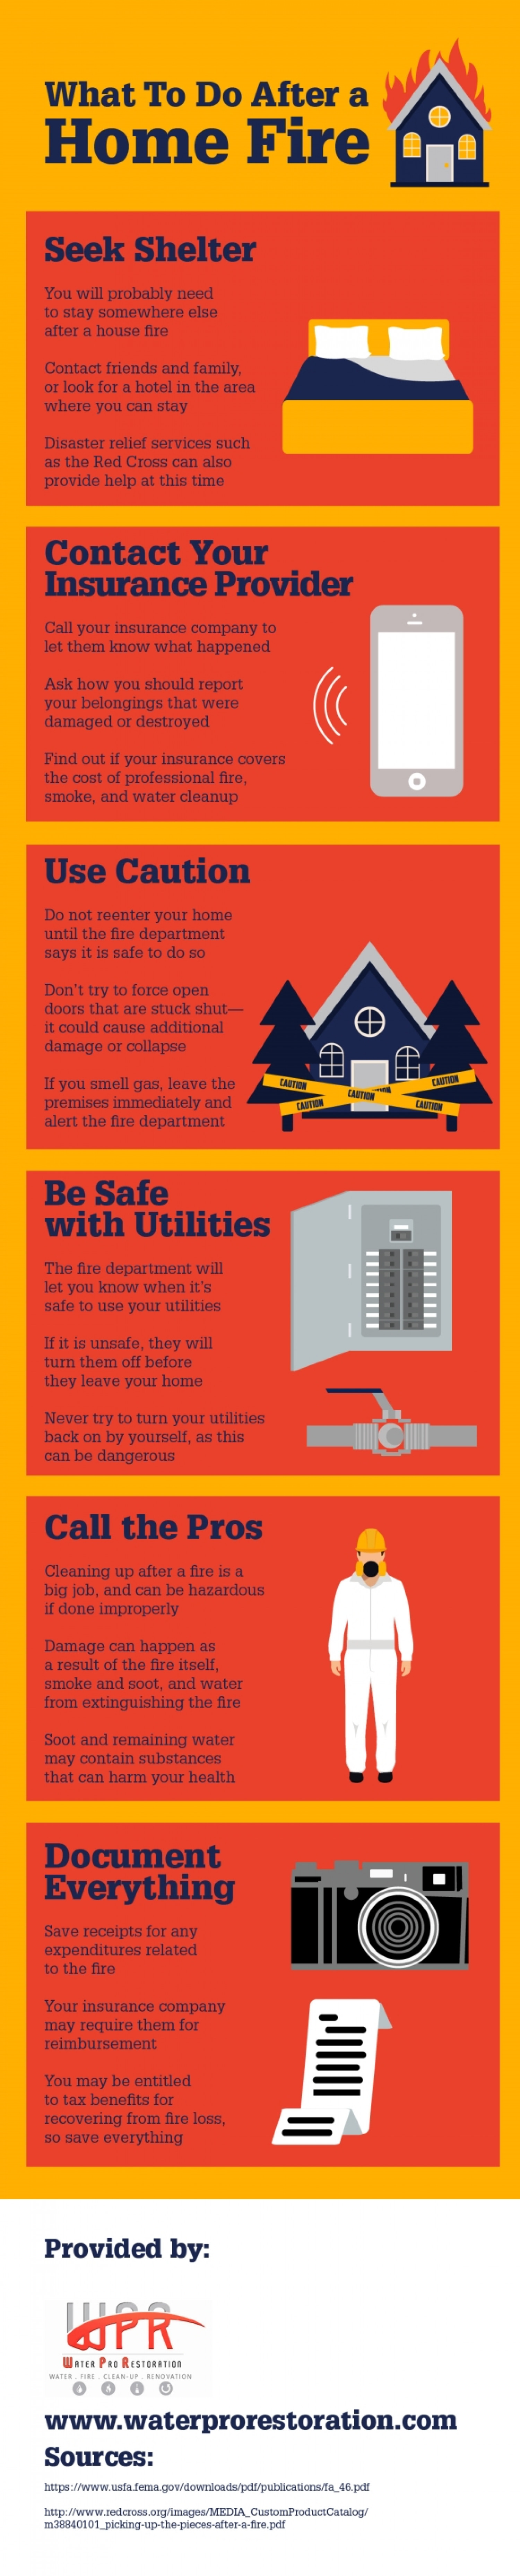 What To Do After a Home Fire  Infographic